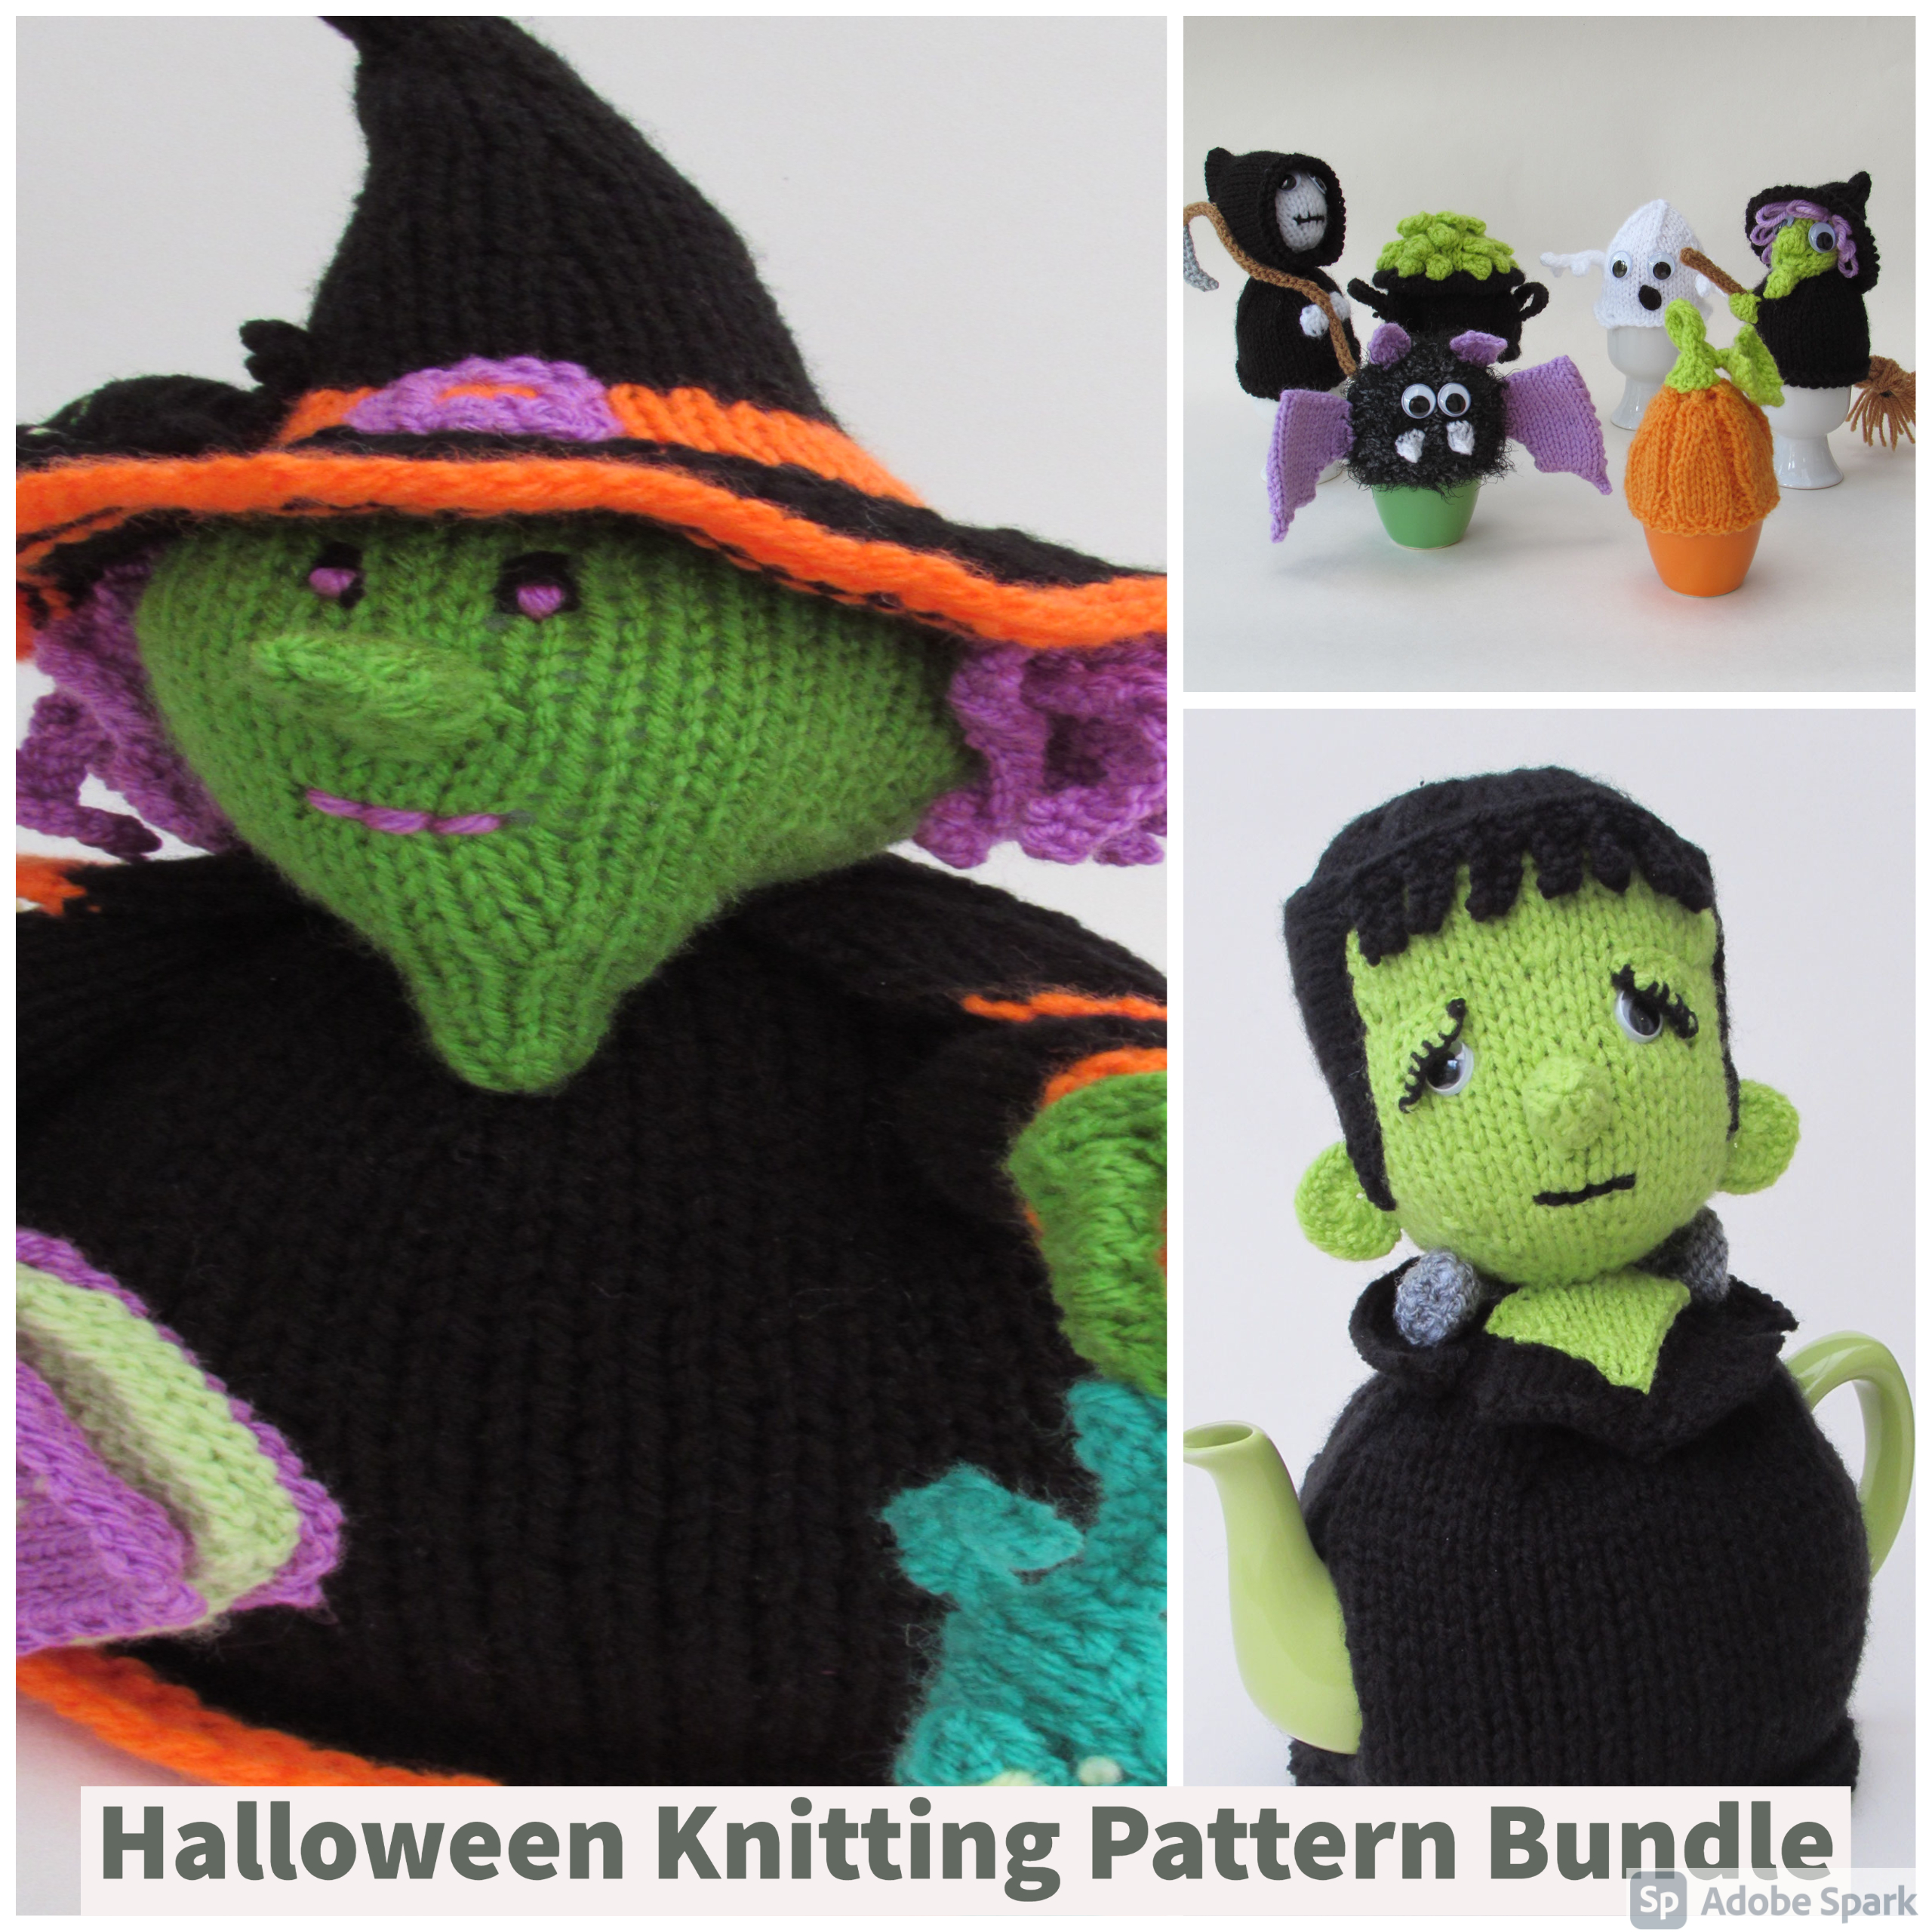 3%20Pattern%20Halloween%20Bundle%20with%20Egg%20Cosies%20